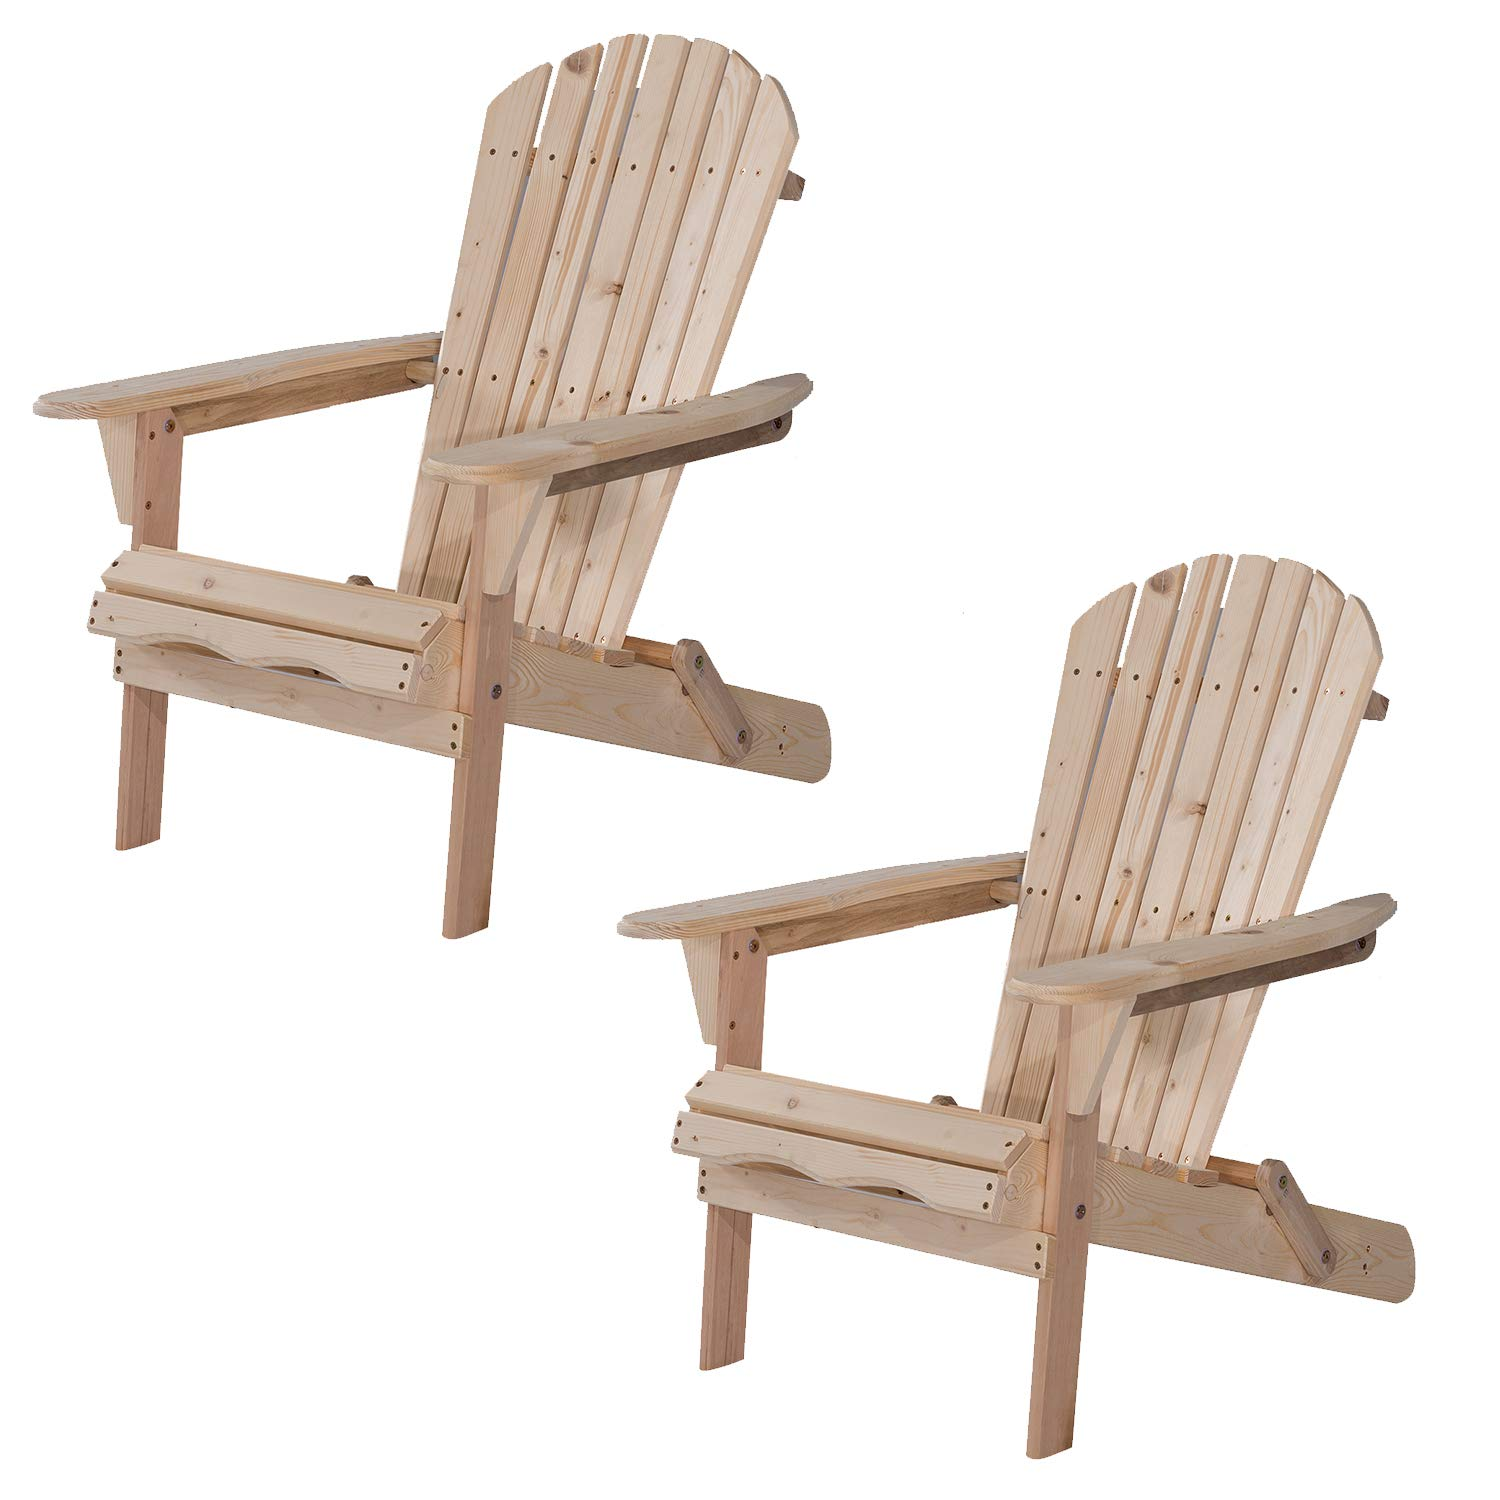 UHOM Outdoor Adirondack Wood Chair Foldable Patio Lawn Garden Furniture Set of 2 by UHOM